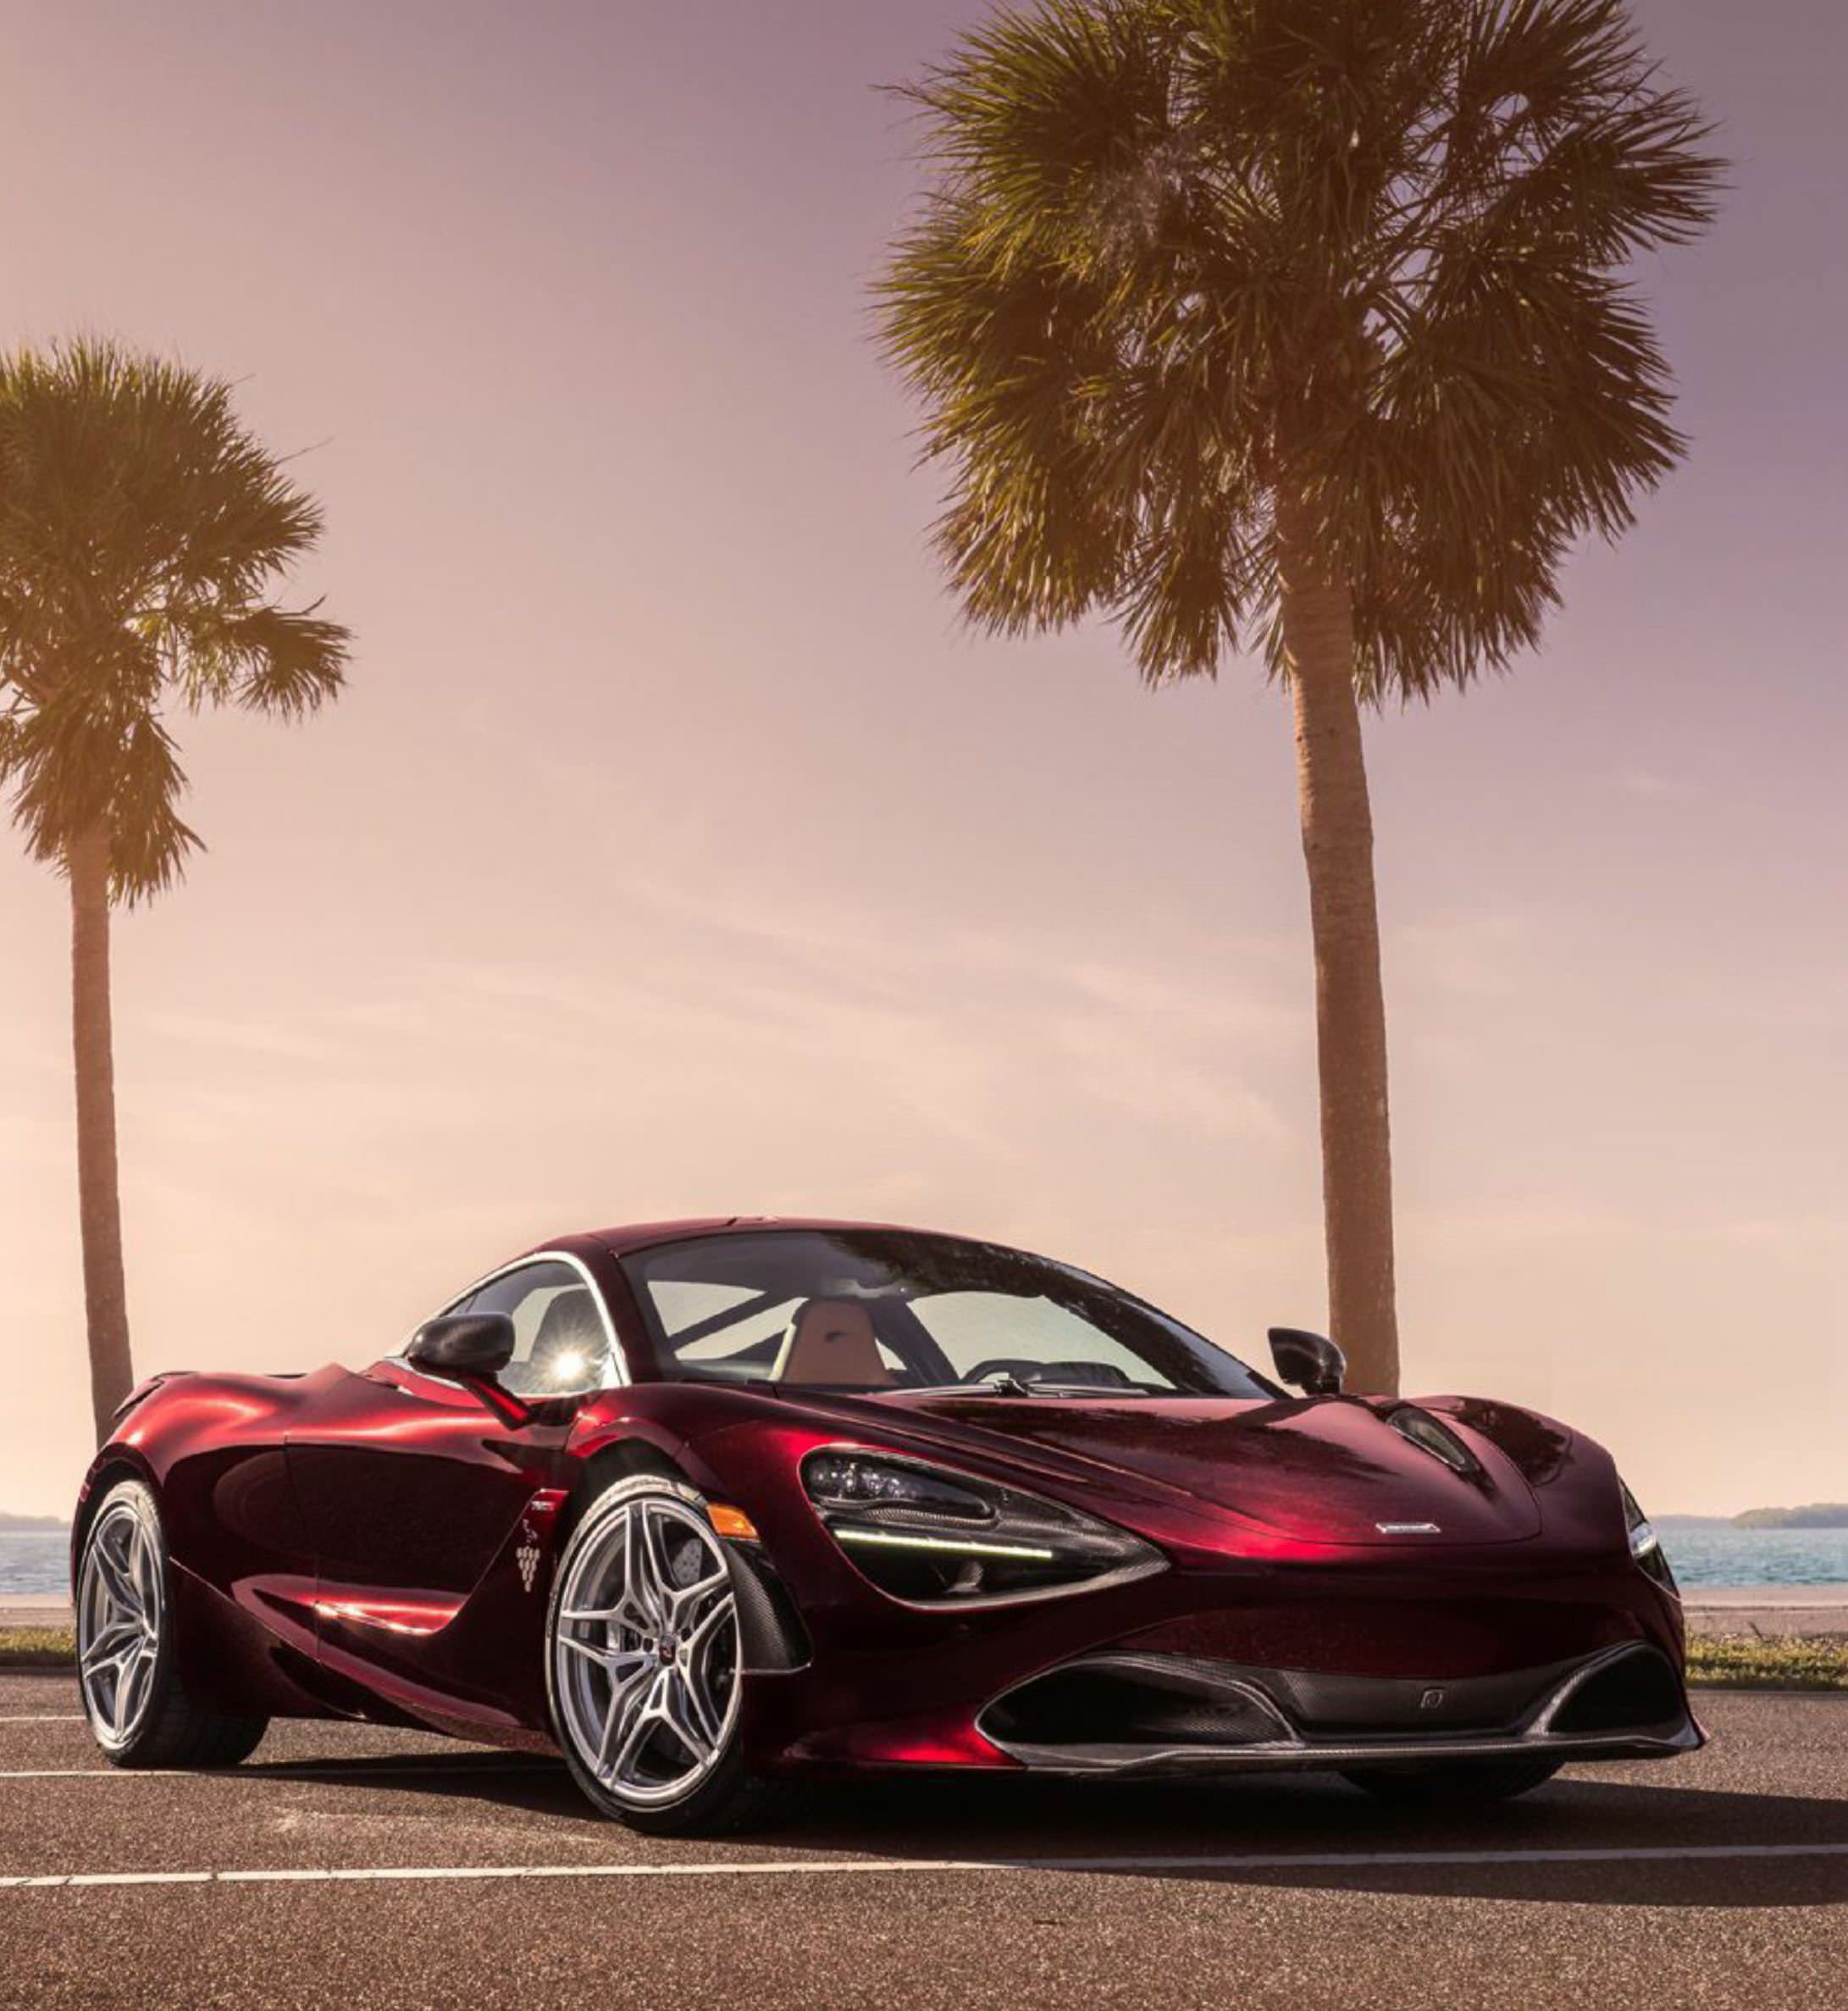 Inspired By The Beast of The Sea, THE MCLAREN 720S Becomes The Conqueror of Land